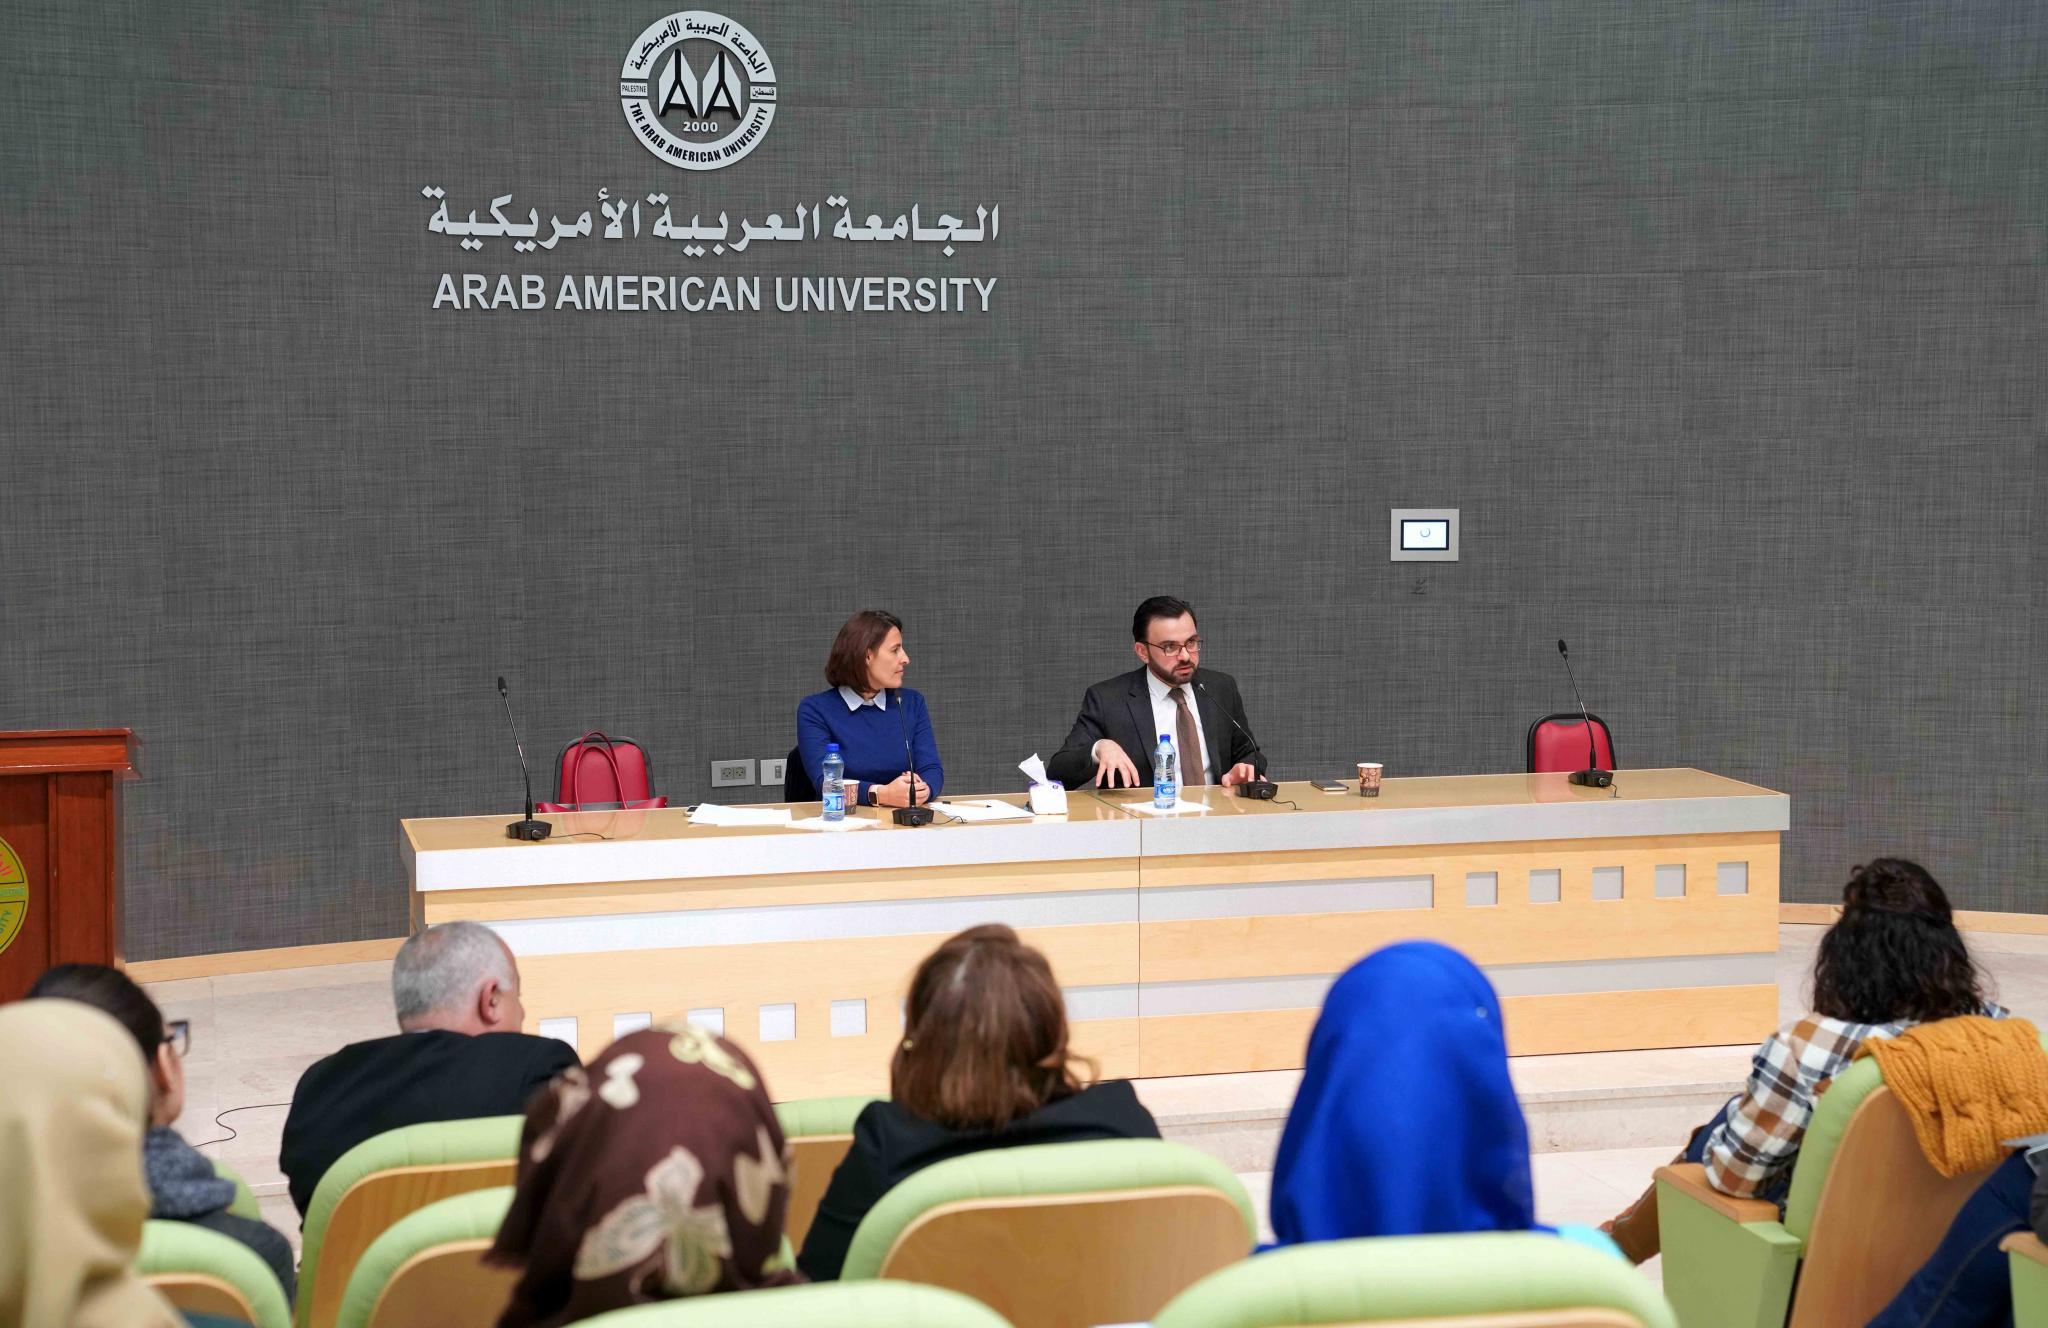 the visit of Minister of Culture Dr. Ihab Bseiso to the university